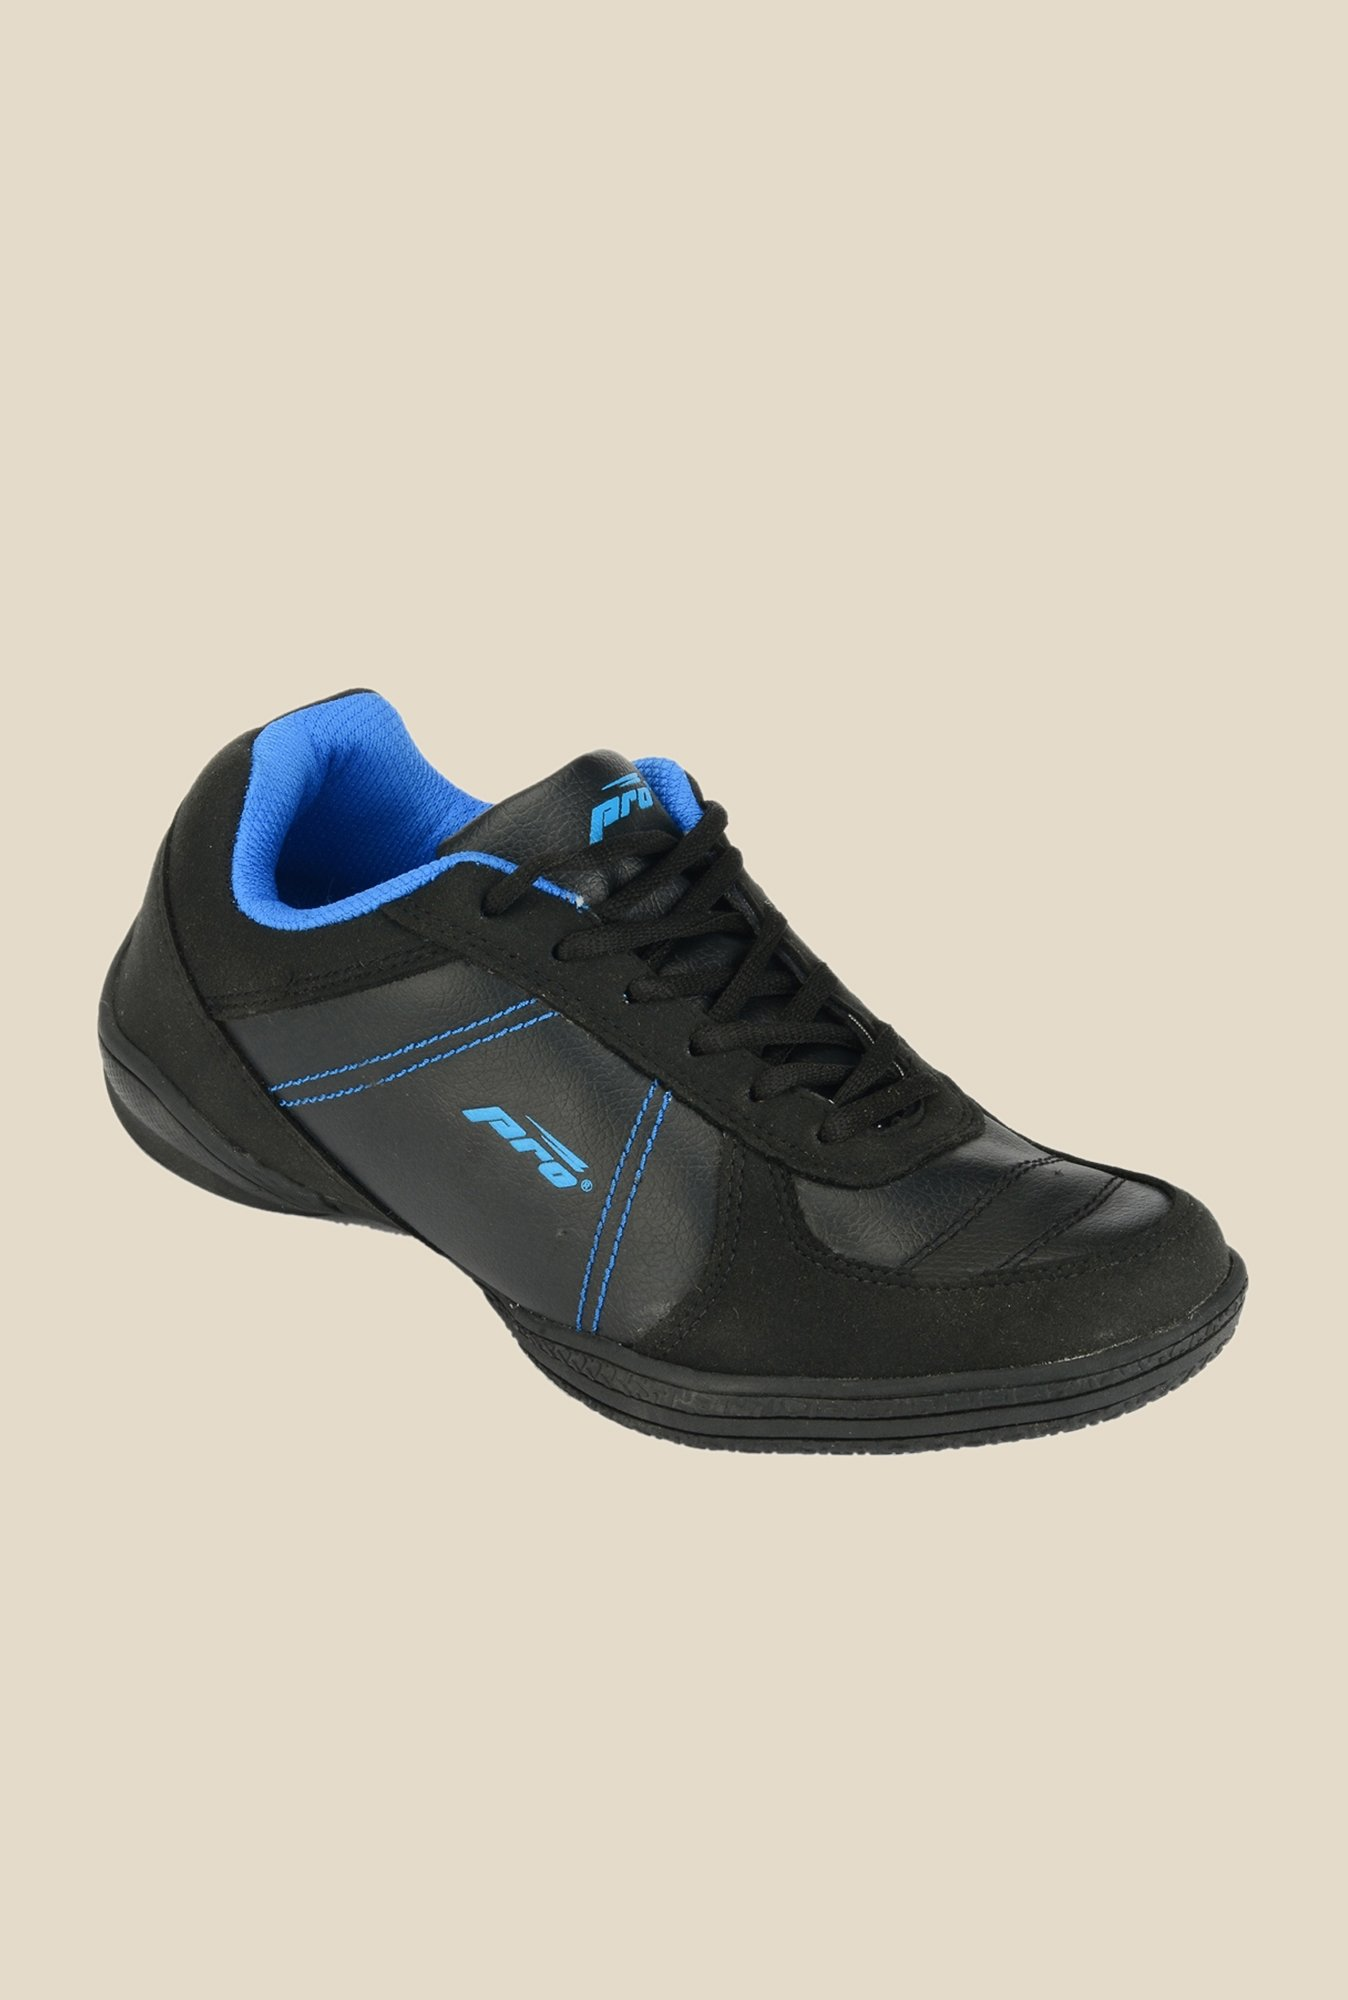 Khadim's Pro Black & Blue Running Shoes